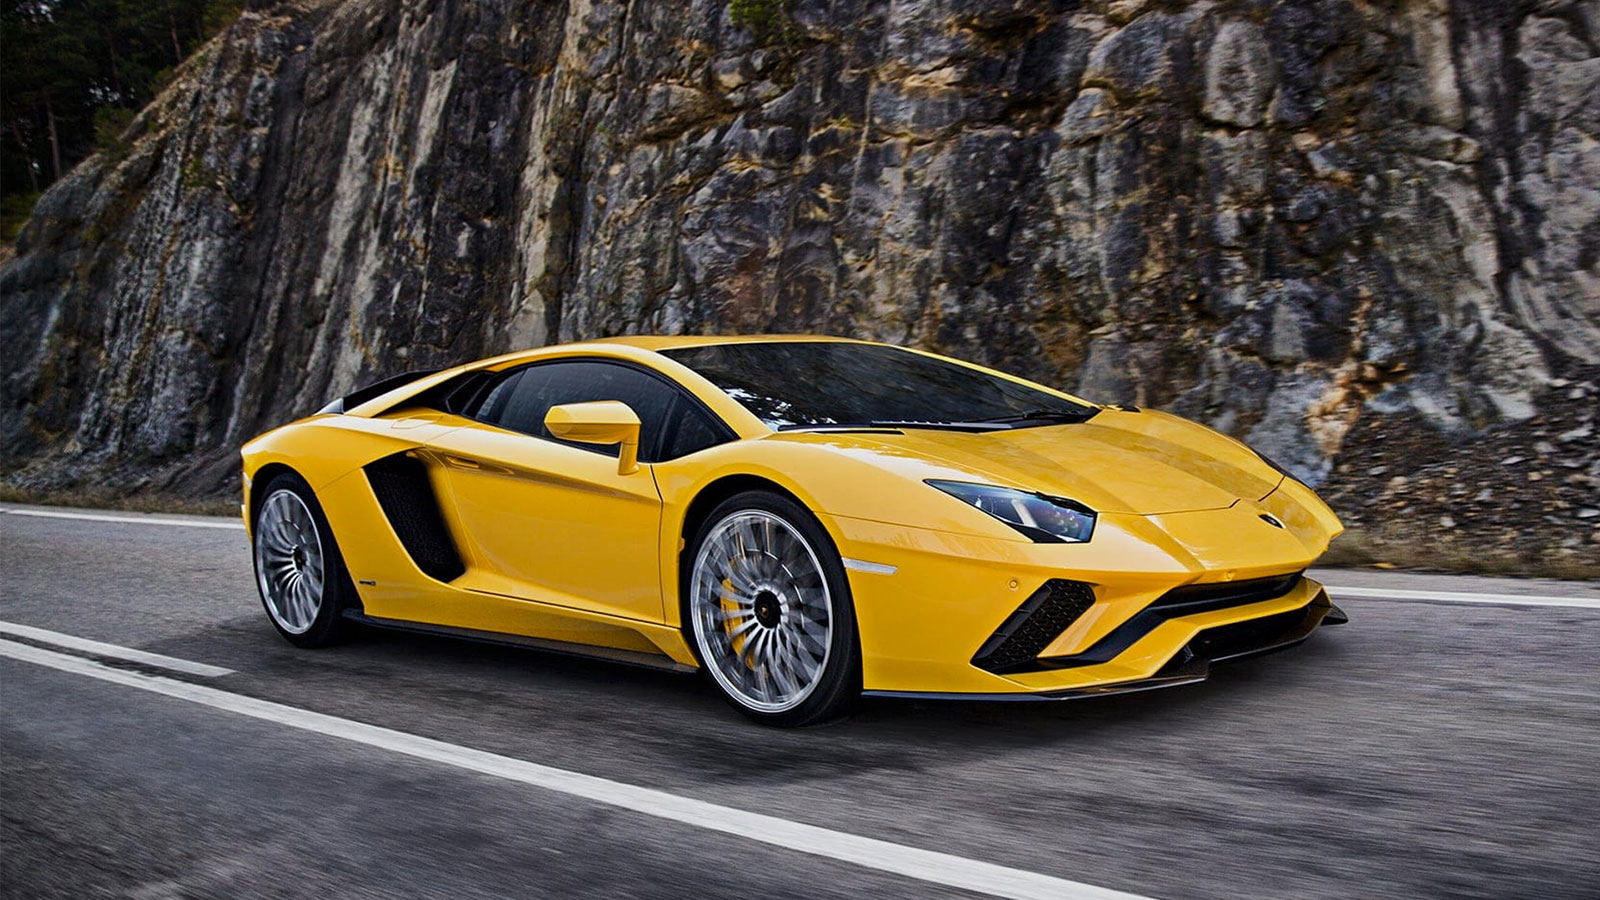 Lamborghini Aventador S Coupe - The Icon Reborn image 1